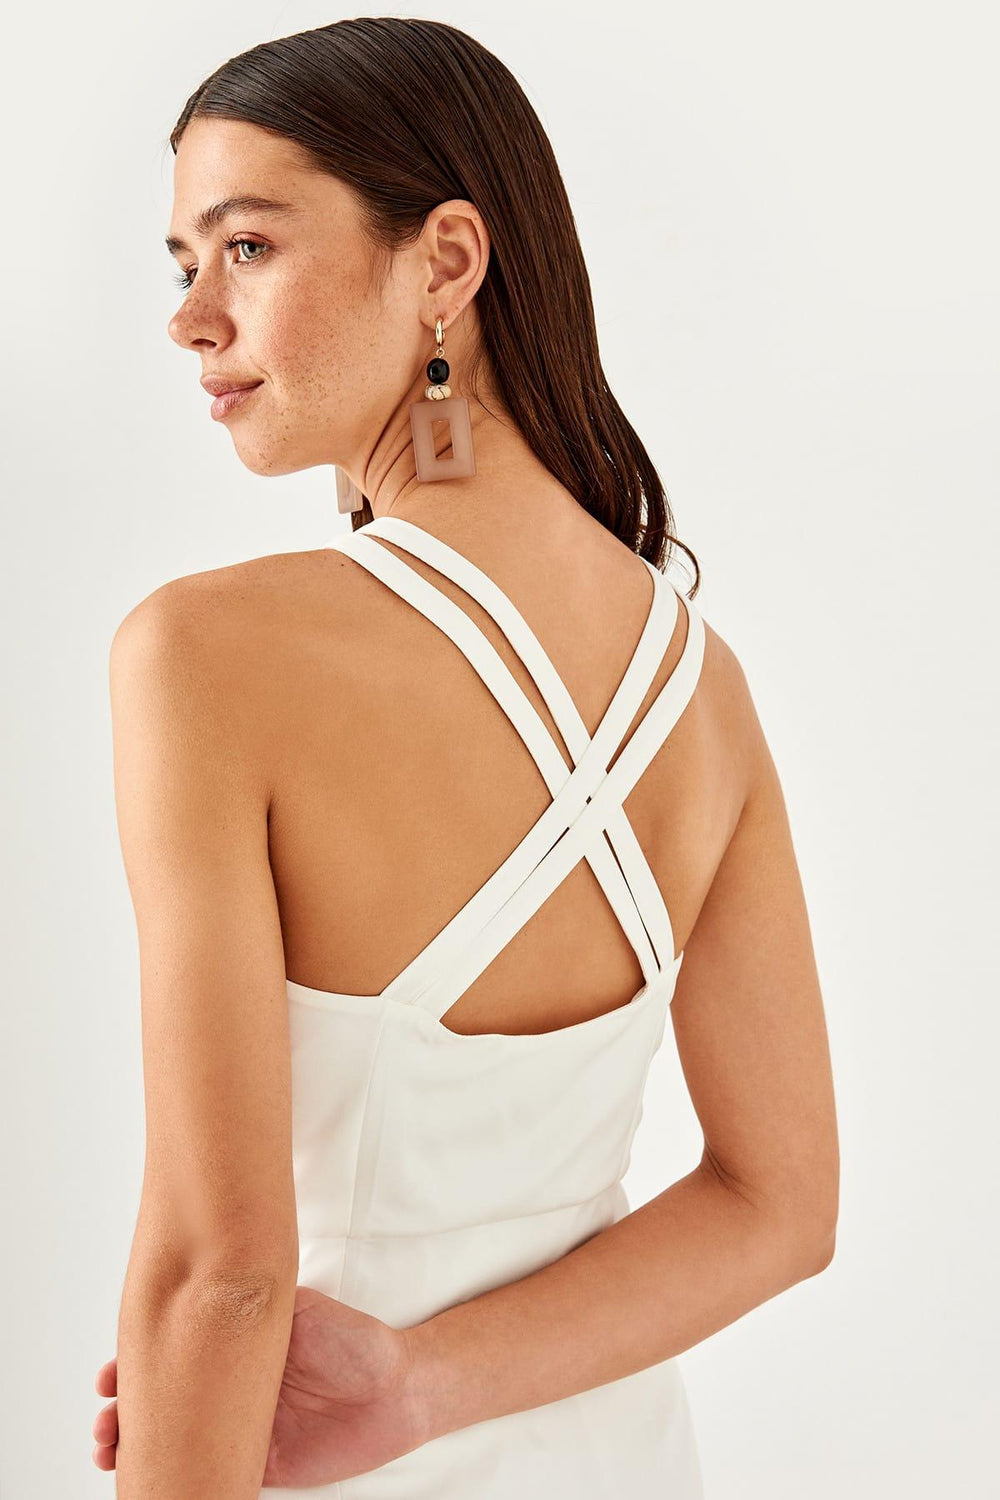 White Cross Halter Dress - Top Maxy